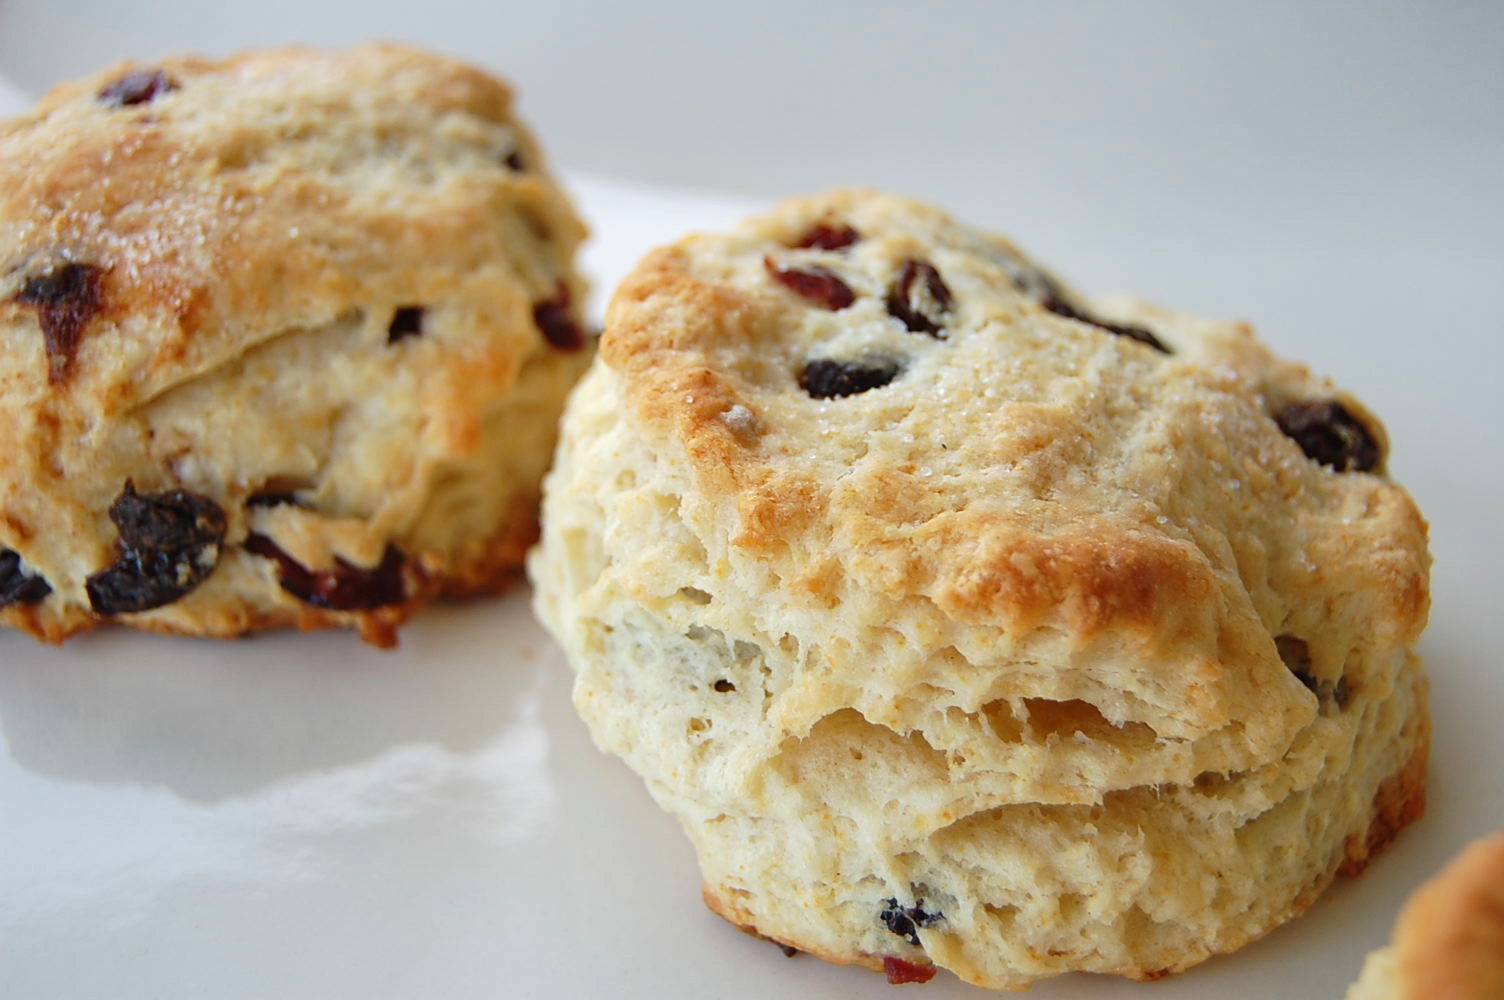 spiced-eggnog-biscuits-with-cranberries